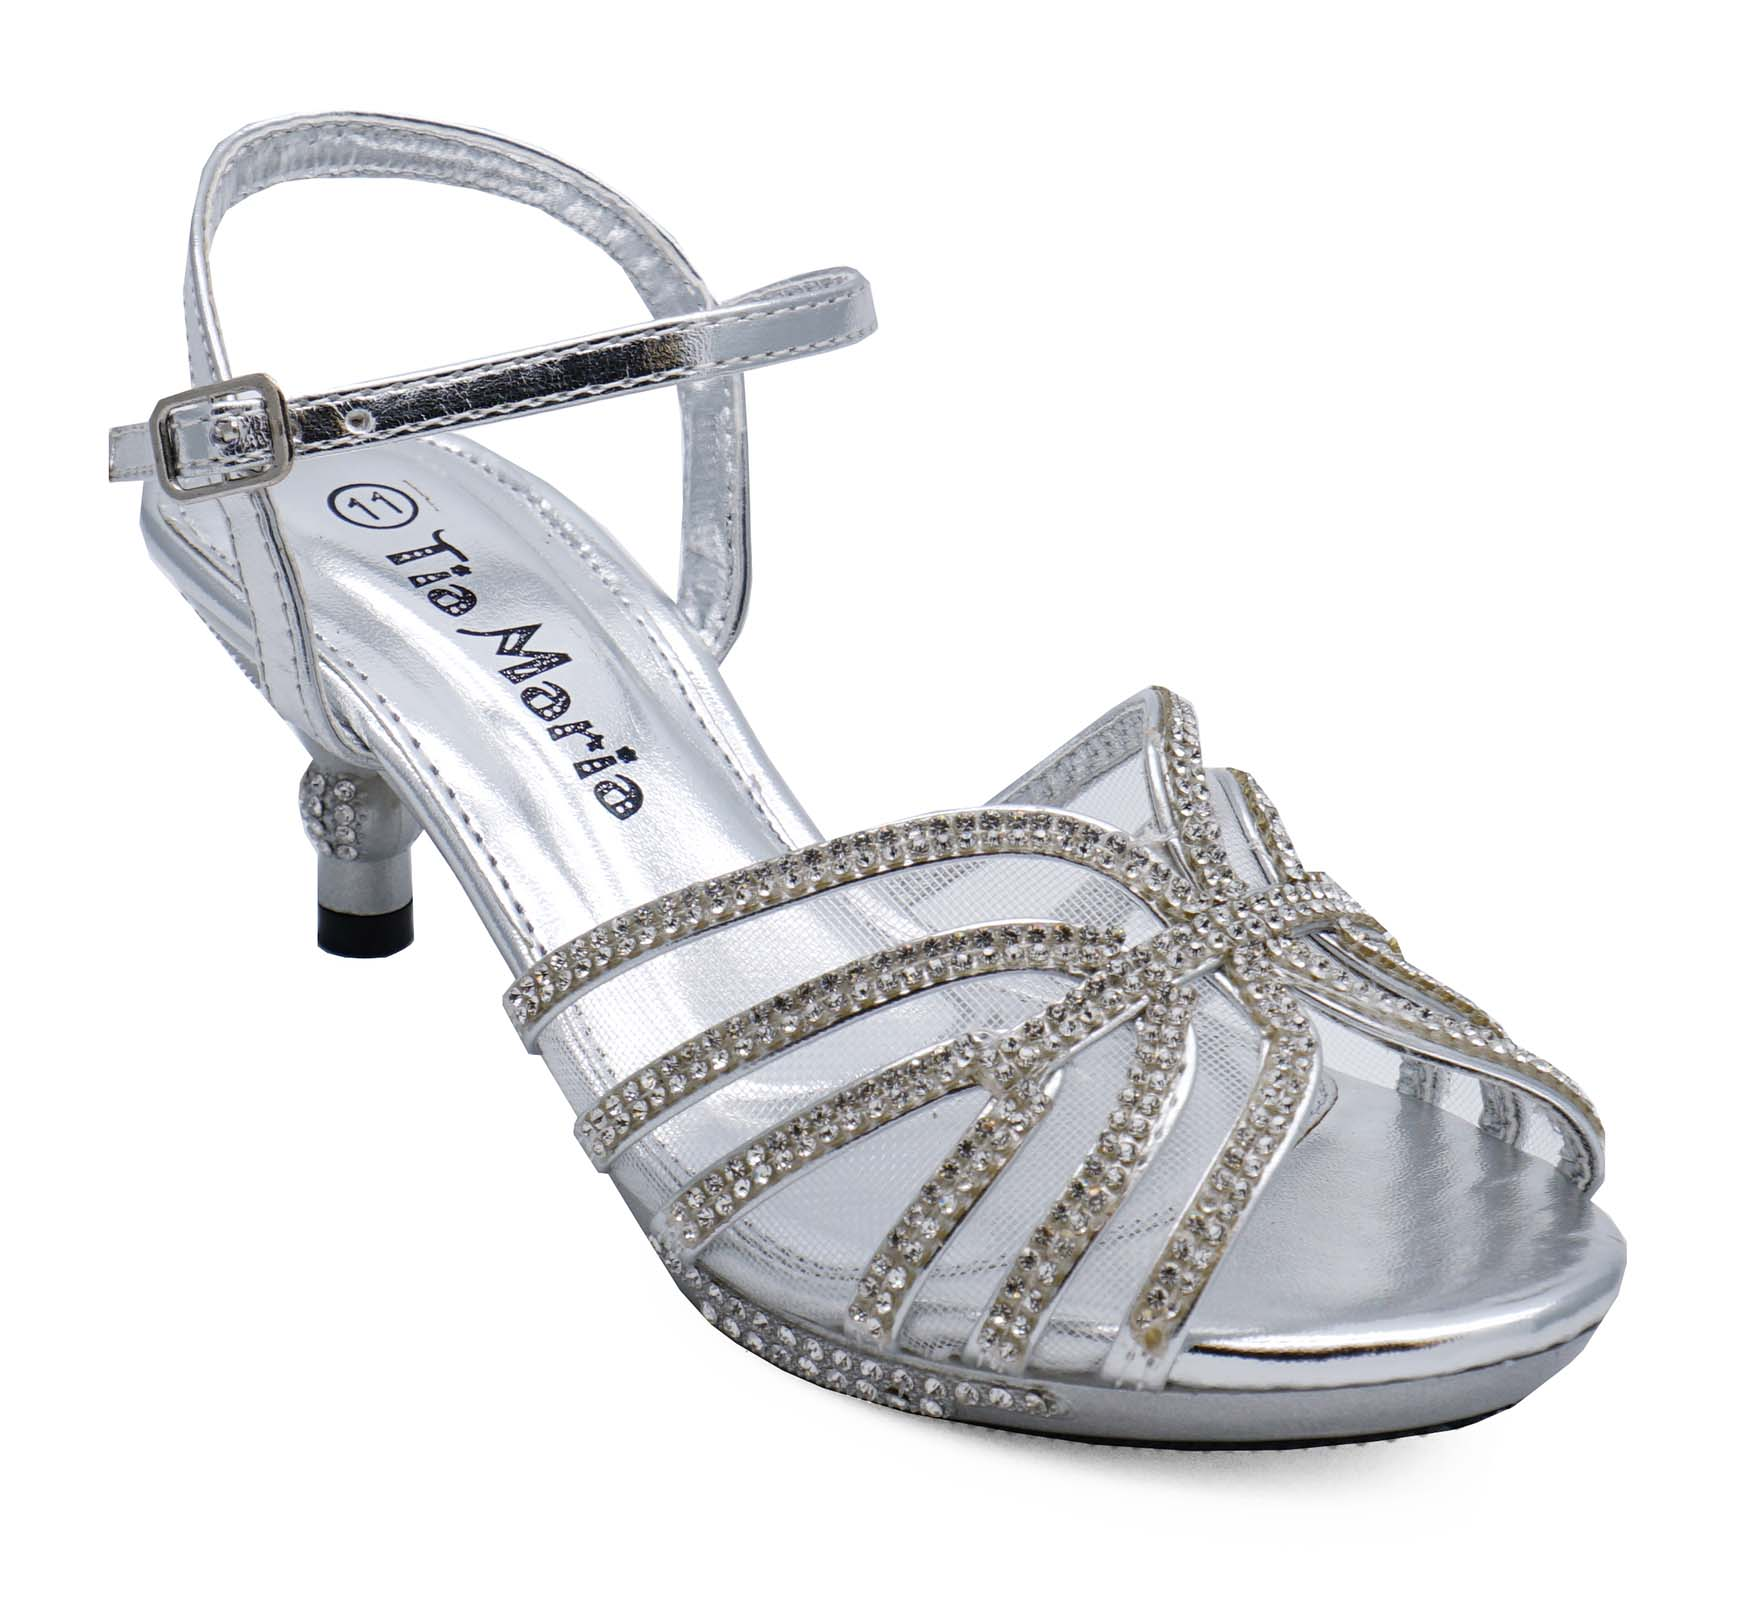 f4c0bdcbe Sentinel GIRLS CHILDRENS SILVER DIAMANTE LOW-HEEL SANDALS PRETTY PARTY  DRESS SHOES 10-2